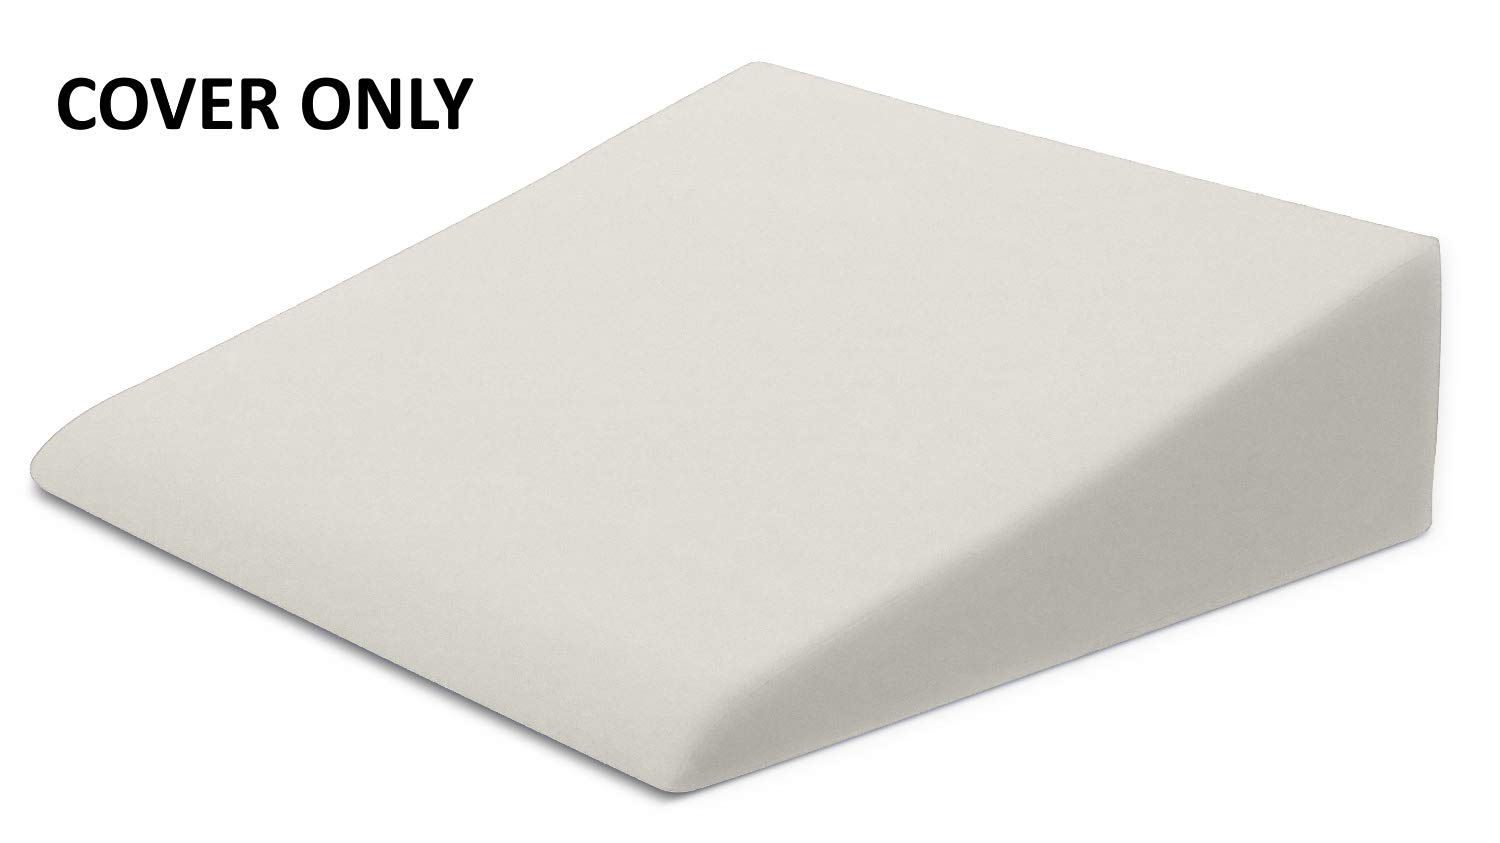 Xtreme Comforts Hypoallergenic Memory Foam Bed Wedge Microfiber Cover Designed to Fit Our (27 'x 25'' x 7'') Bed Wedge Pillow (Ivory)